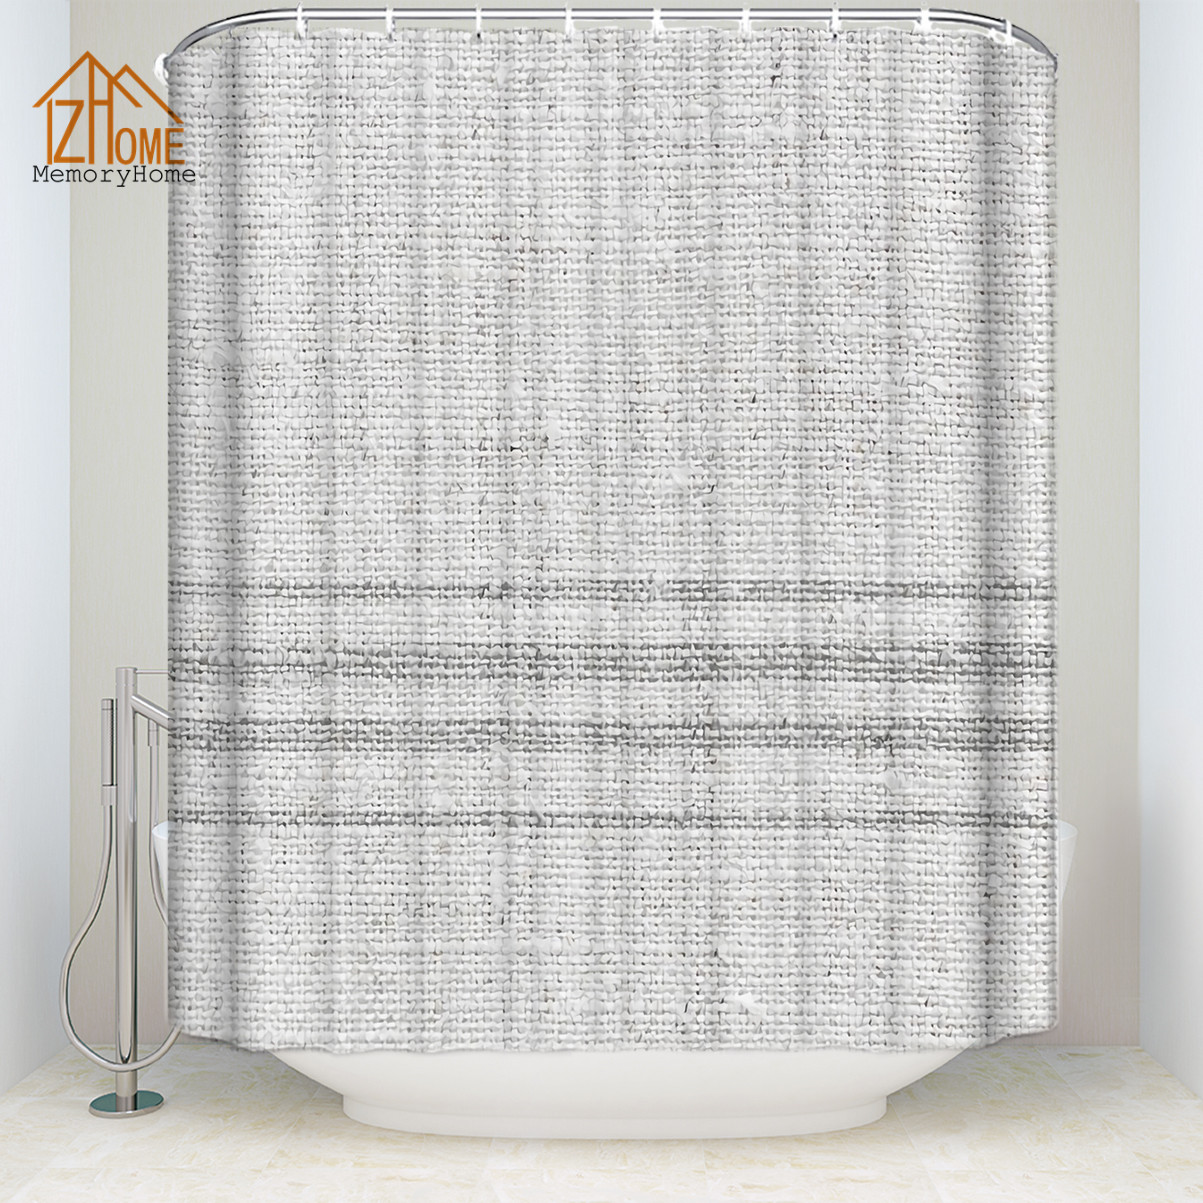 Us 17 67 32 Off Memory Home Vintage Farmhouse Grain Sack Printed Polyester Shower Curtain Waterproof Fabric Shower Curtain Bathroom Decor In Shower